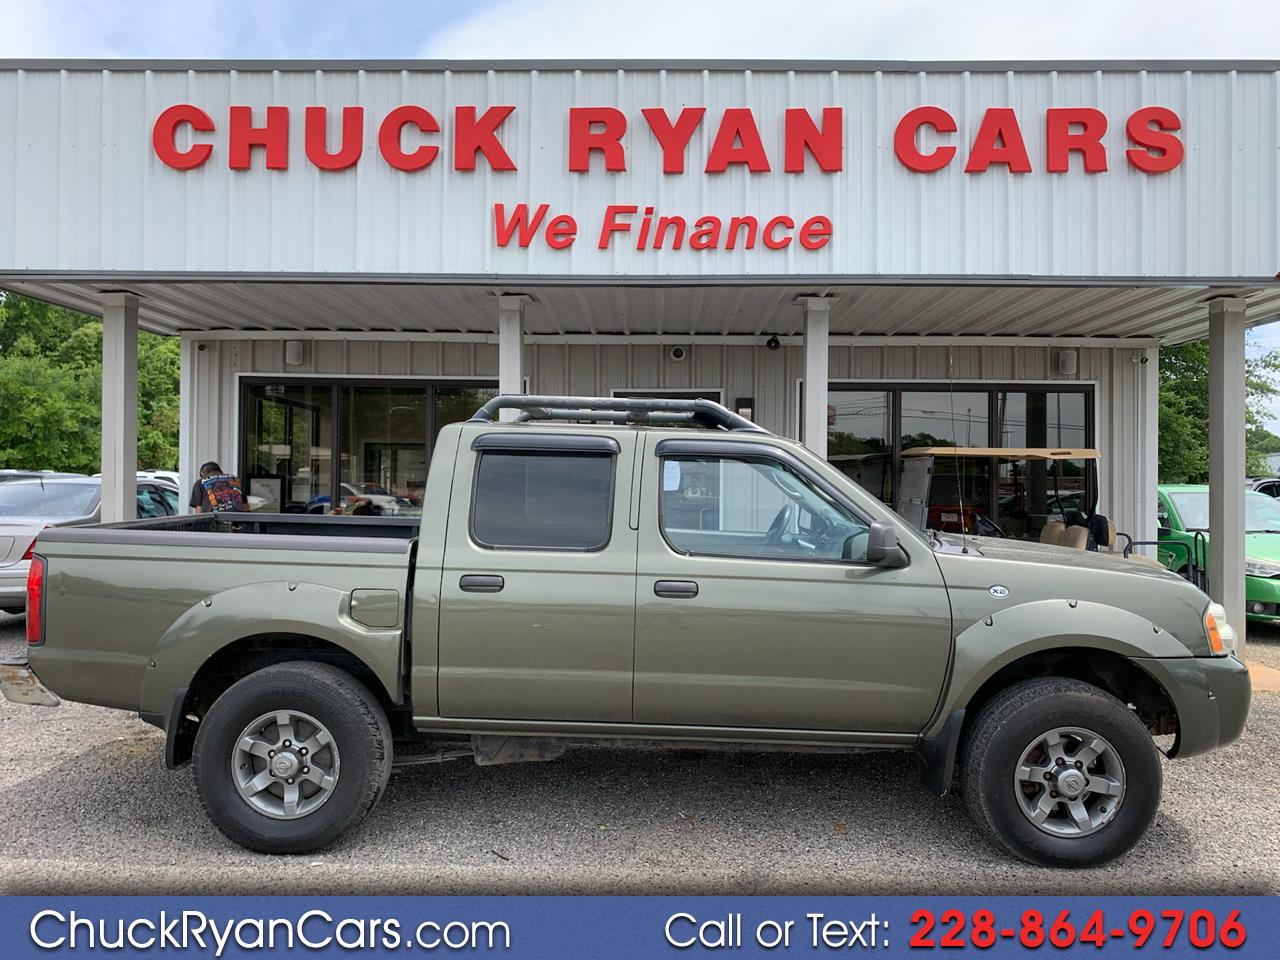 Nissan Frontier 2WD XE Crew Cab V6 Auto Std Bed 2003